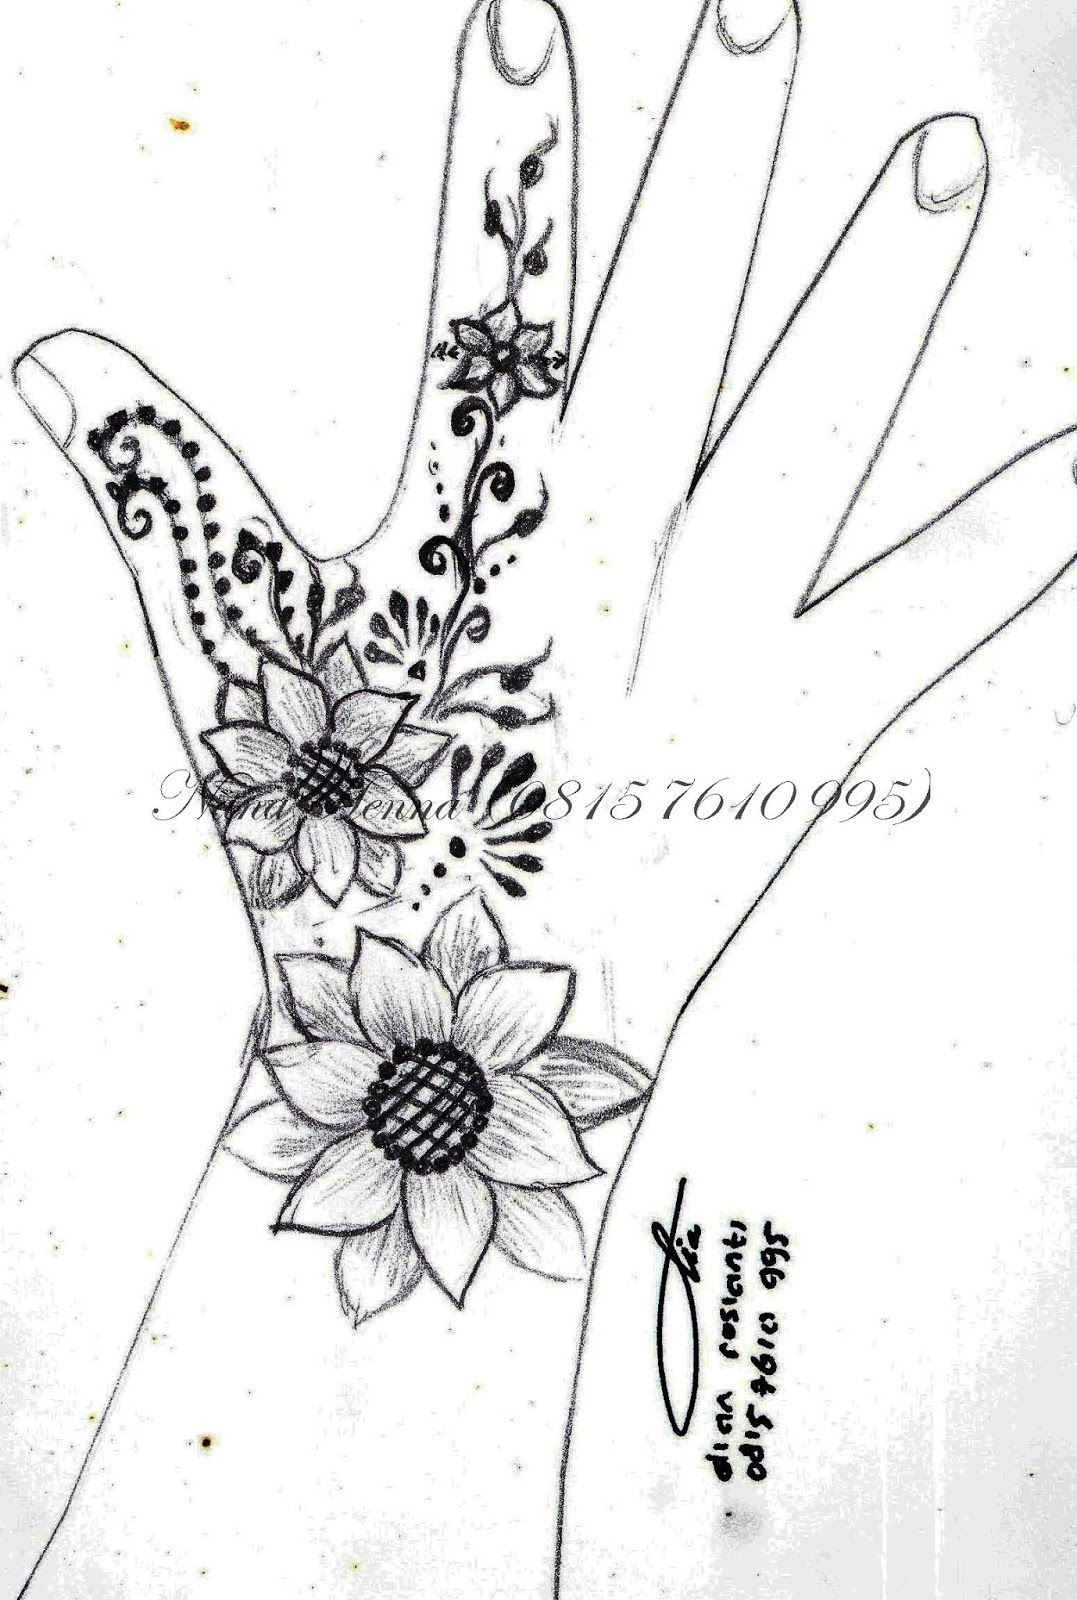 NANA HENNA  UNGARANSEMARANG  HENNA DESIGN ON PAPER by